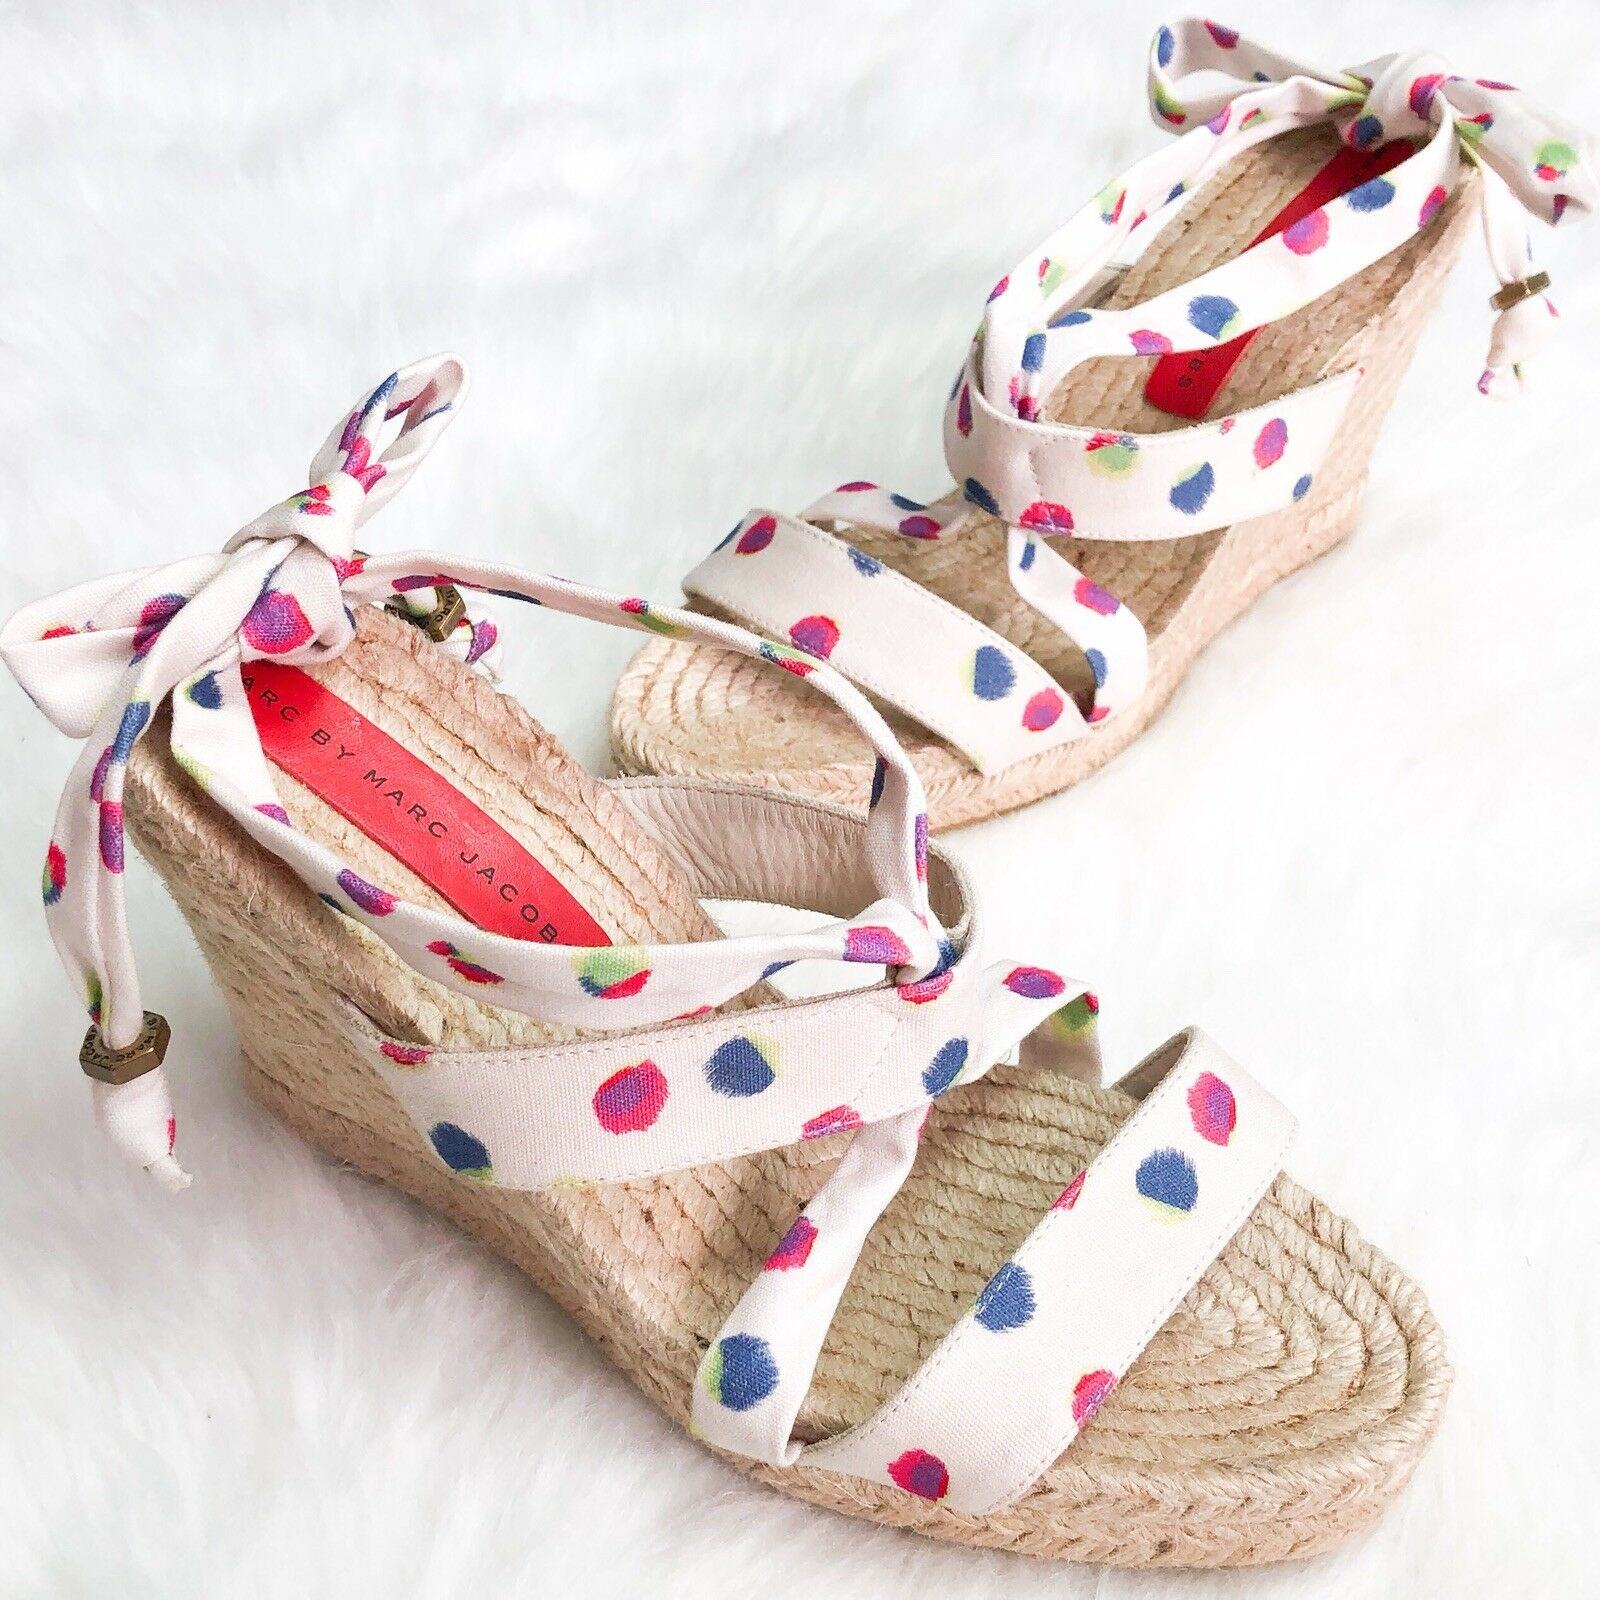 Marc By Marc Jacobs Mujer Alpargatas Cuñas Paintball Lunares up tie up Lunares Zapato 8 46ab11